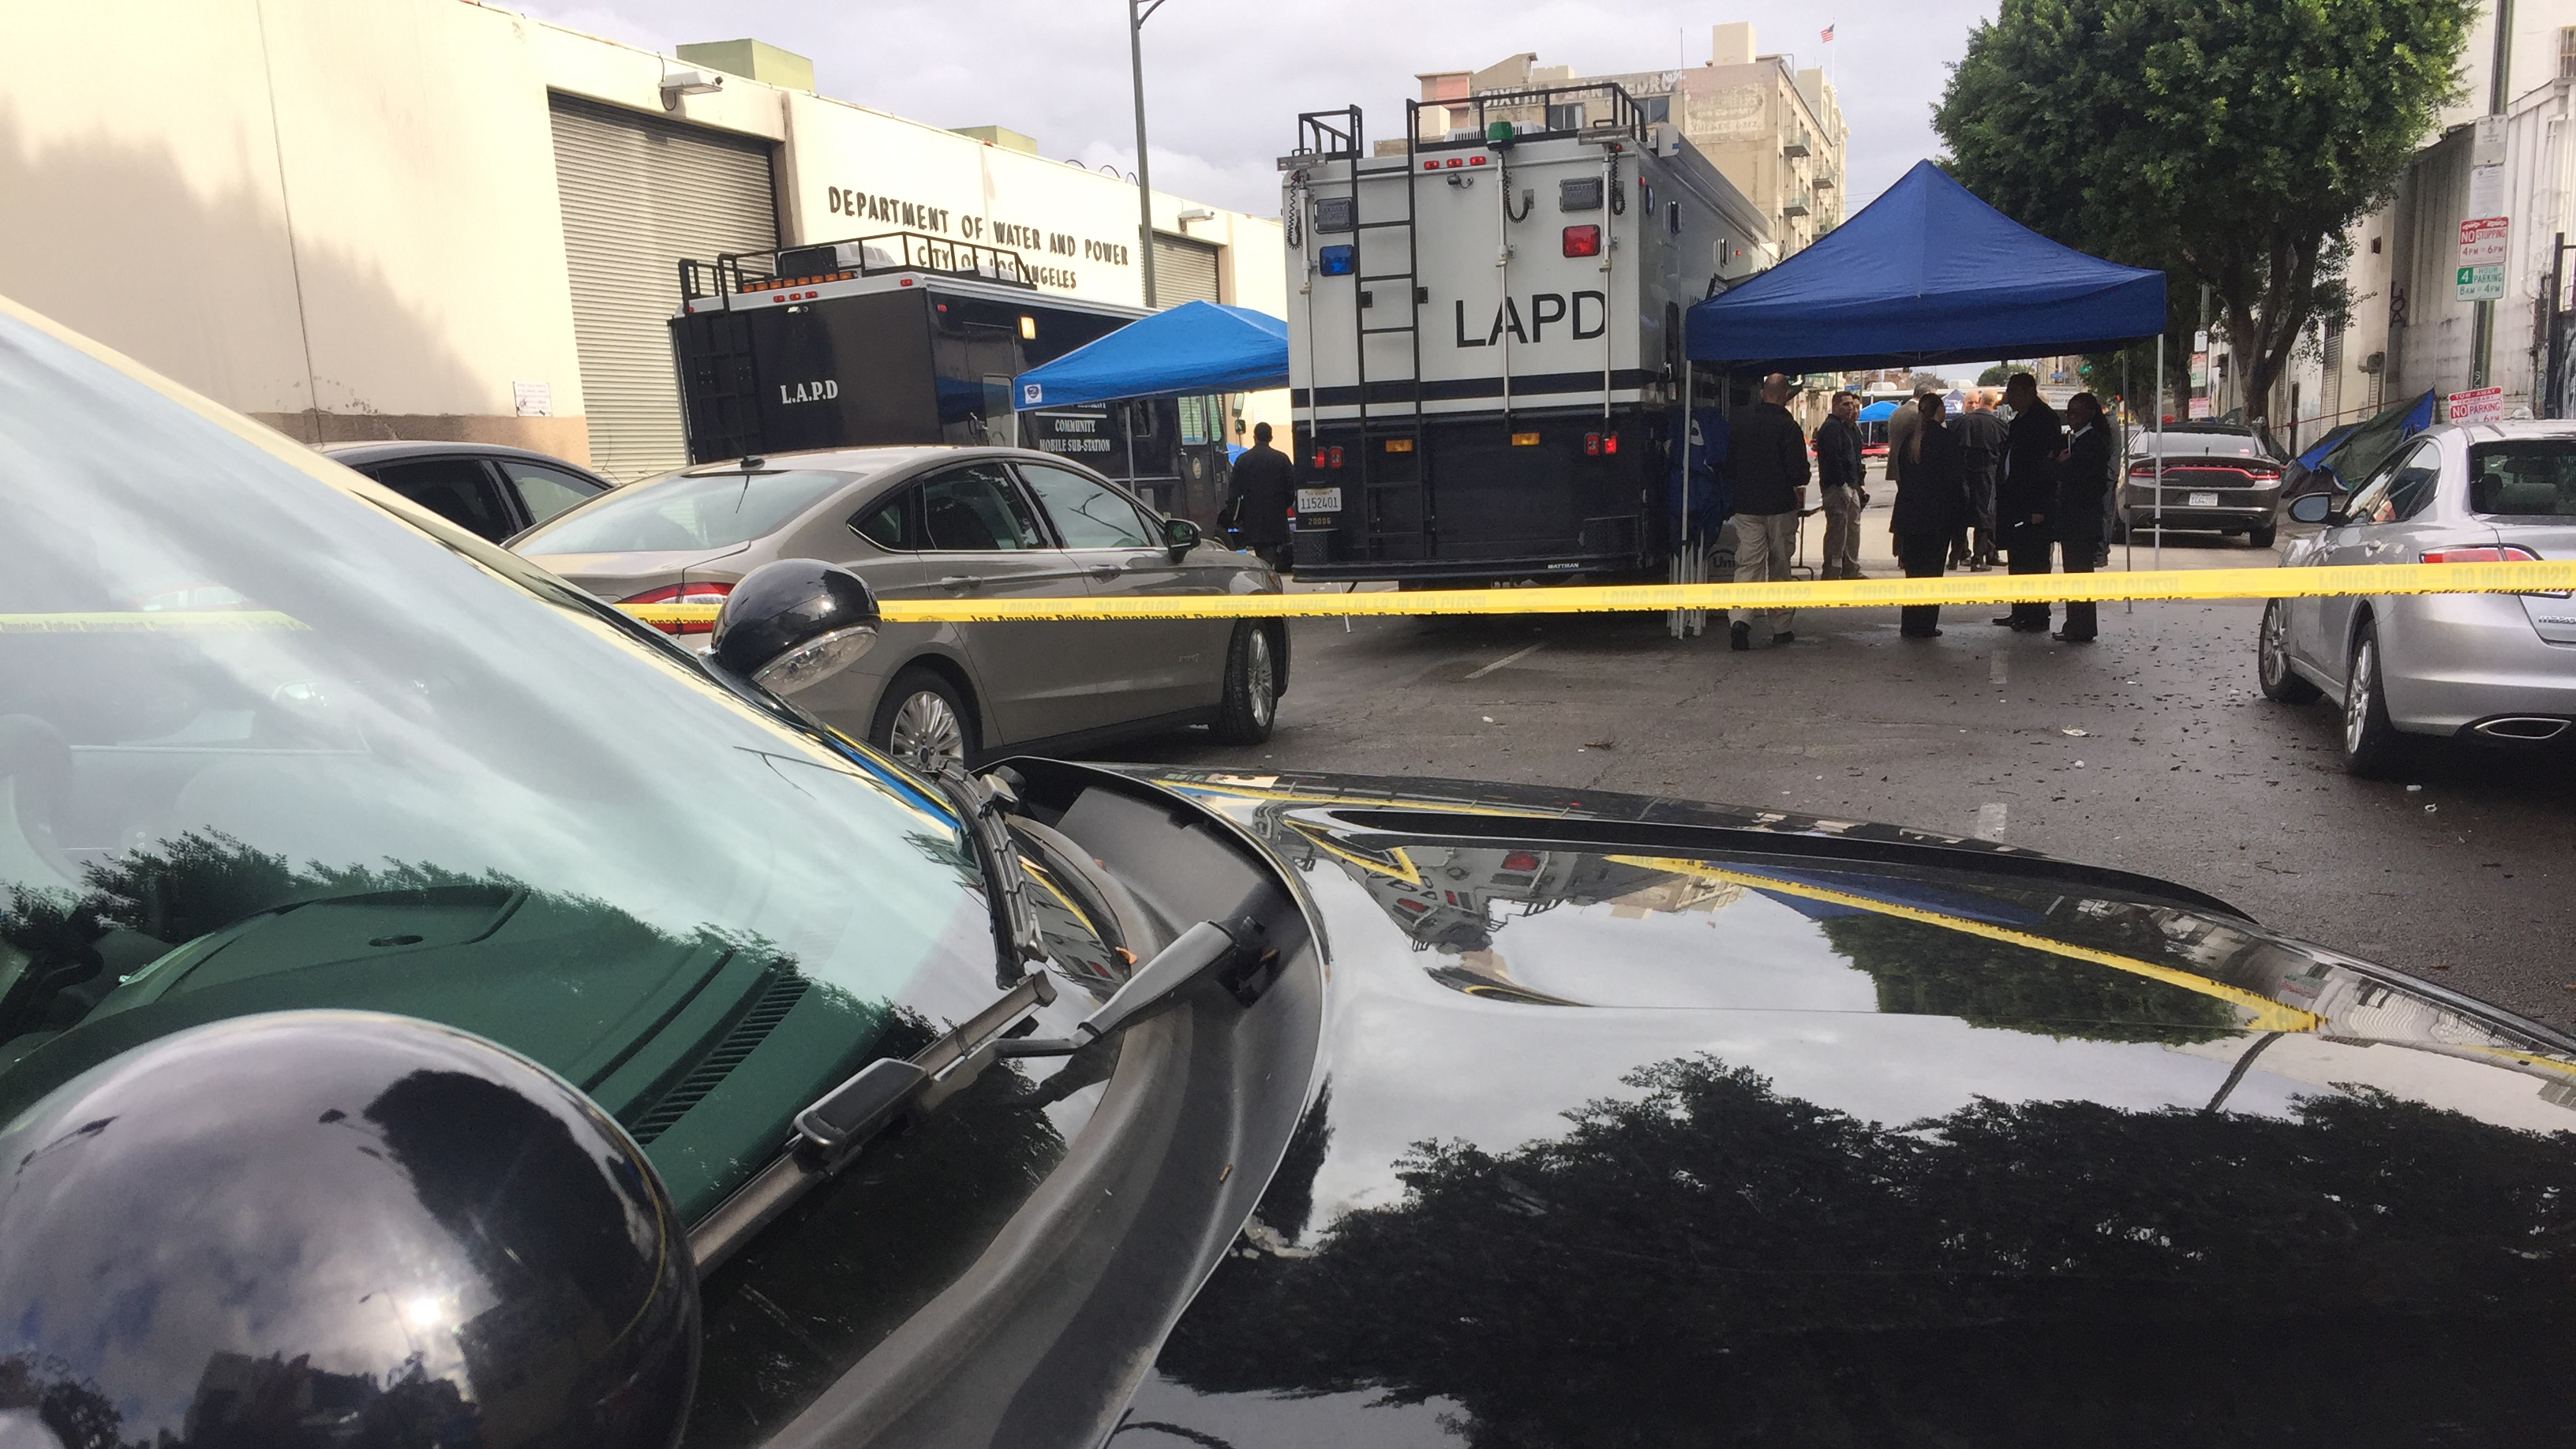 LAPD Officer Severely Injured in a Fight on LA's Skid Row